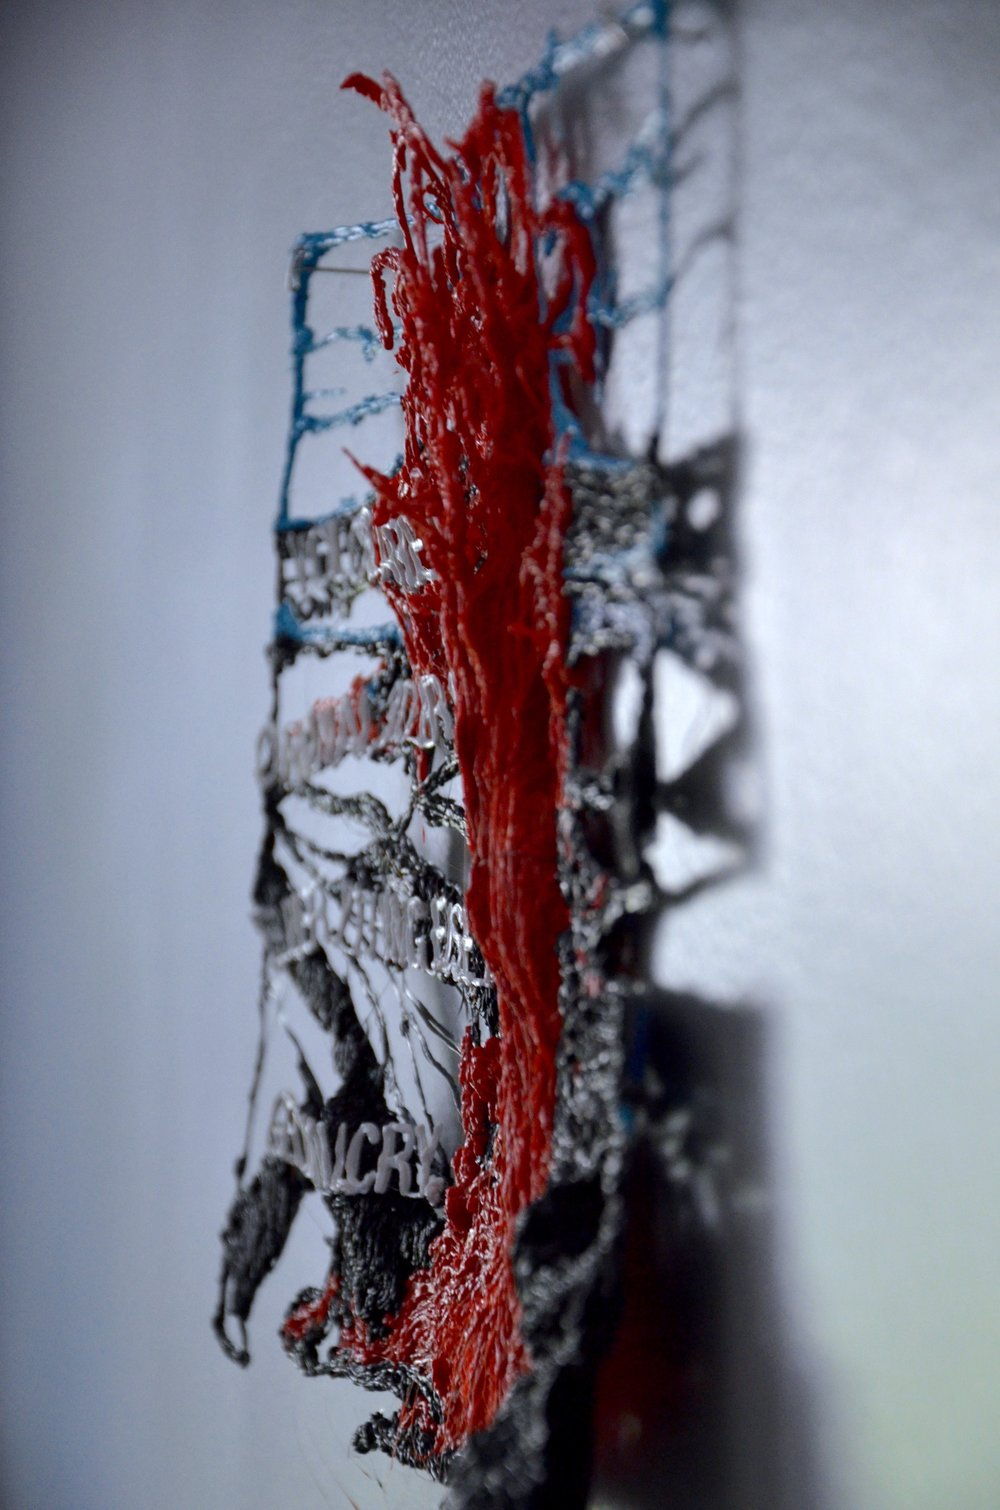 IMAGE # 2 TITLE: VOLCANOES ARE THE ORIGINAL 3D PRINTER. EVERYTHING ELSE IS GEOMIMICRY (2015) (SIDE PROFILE)